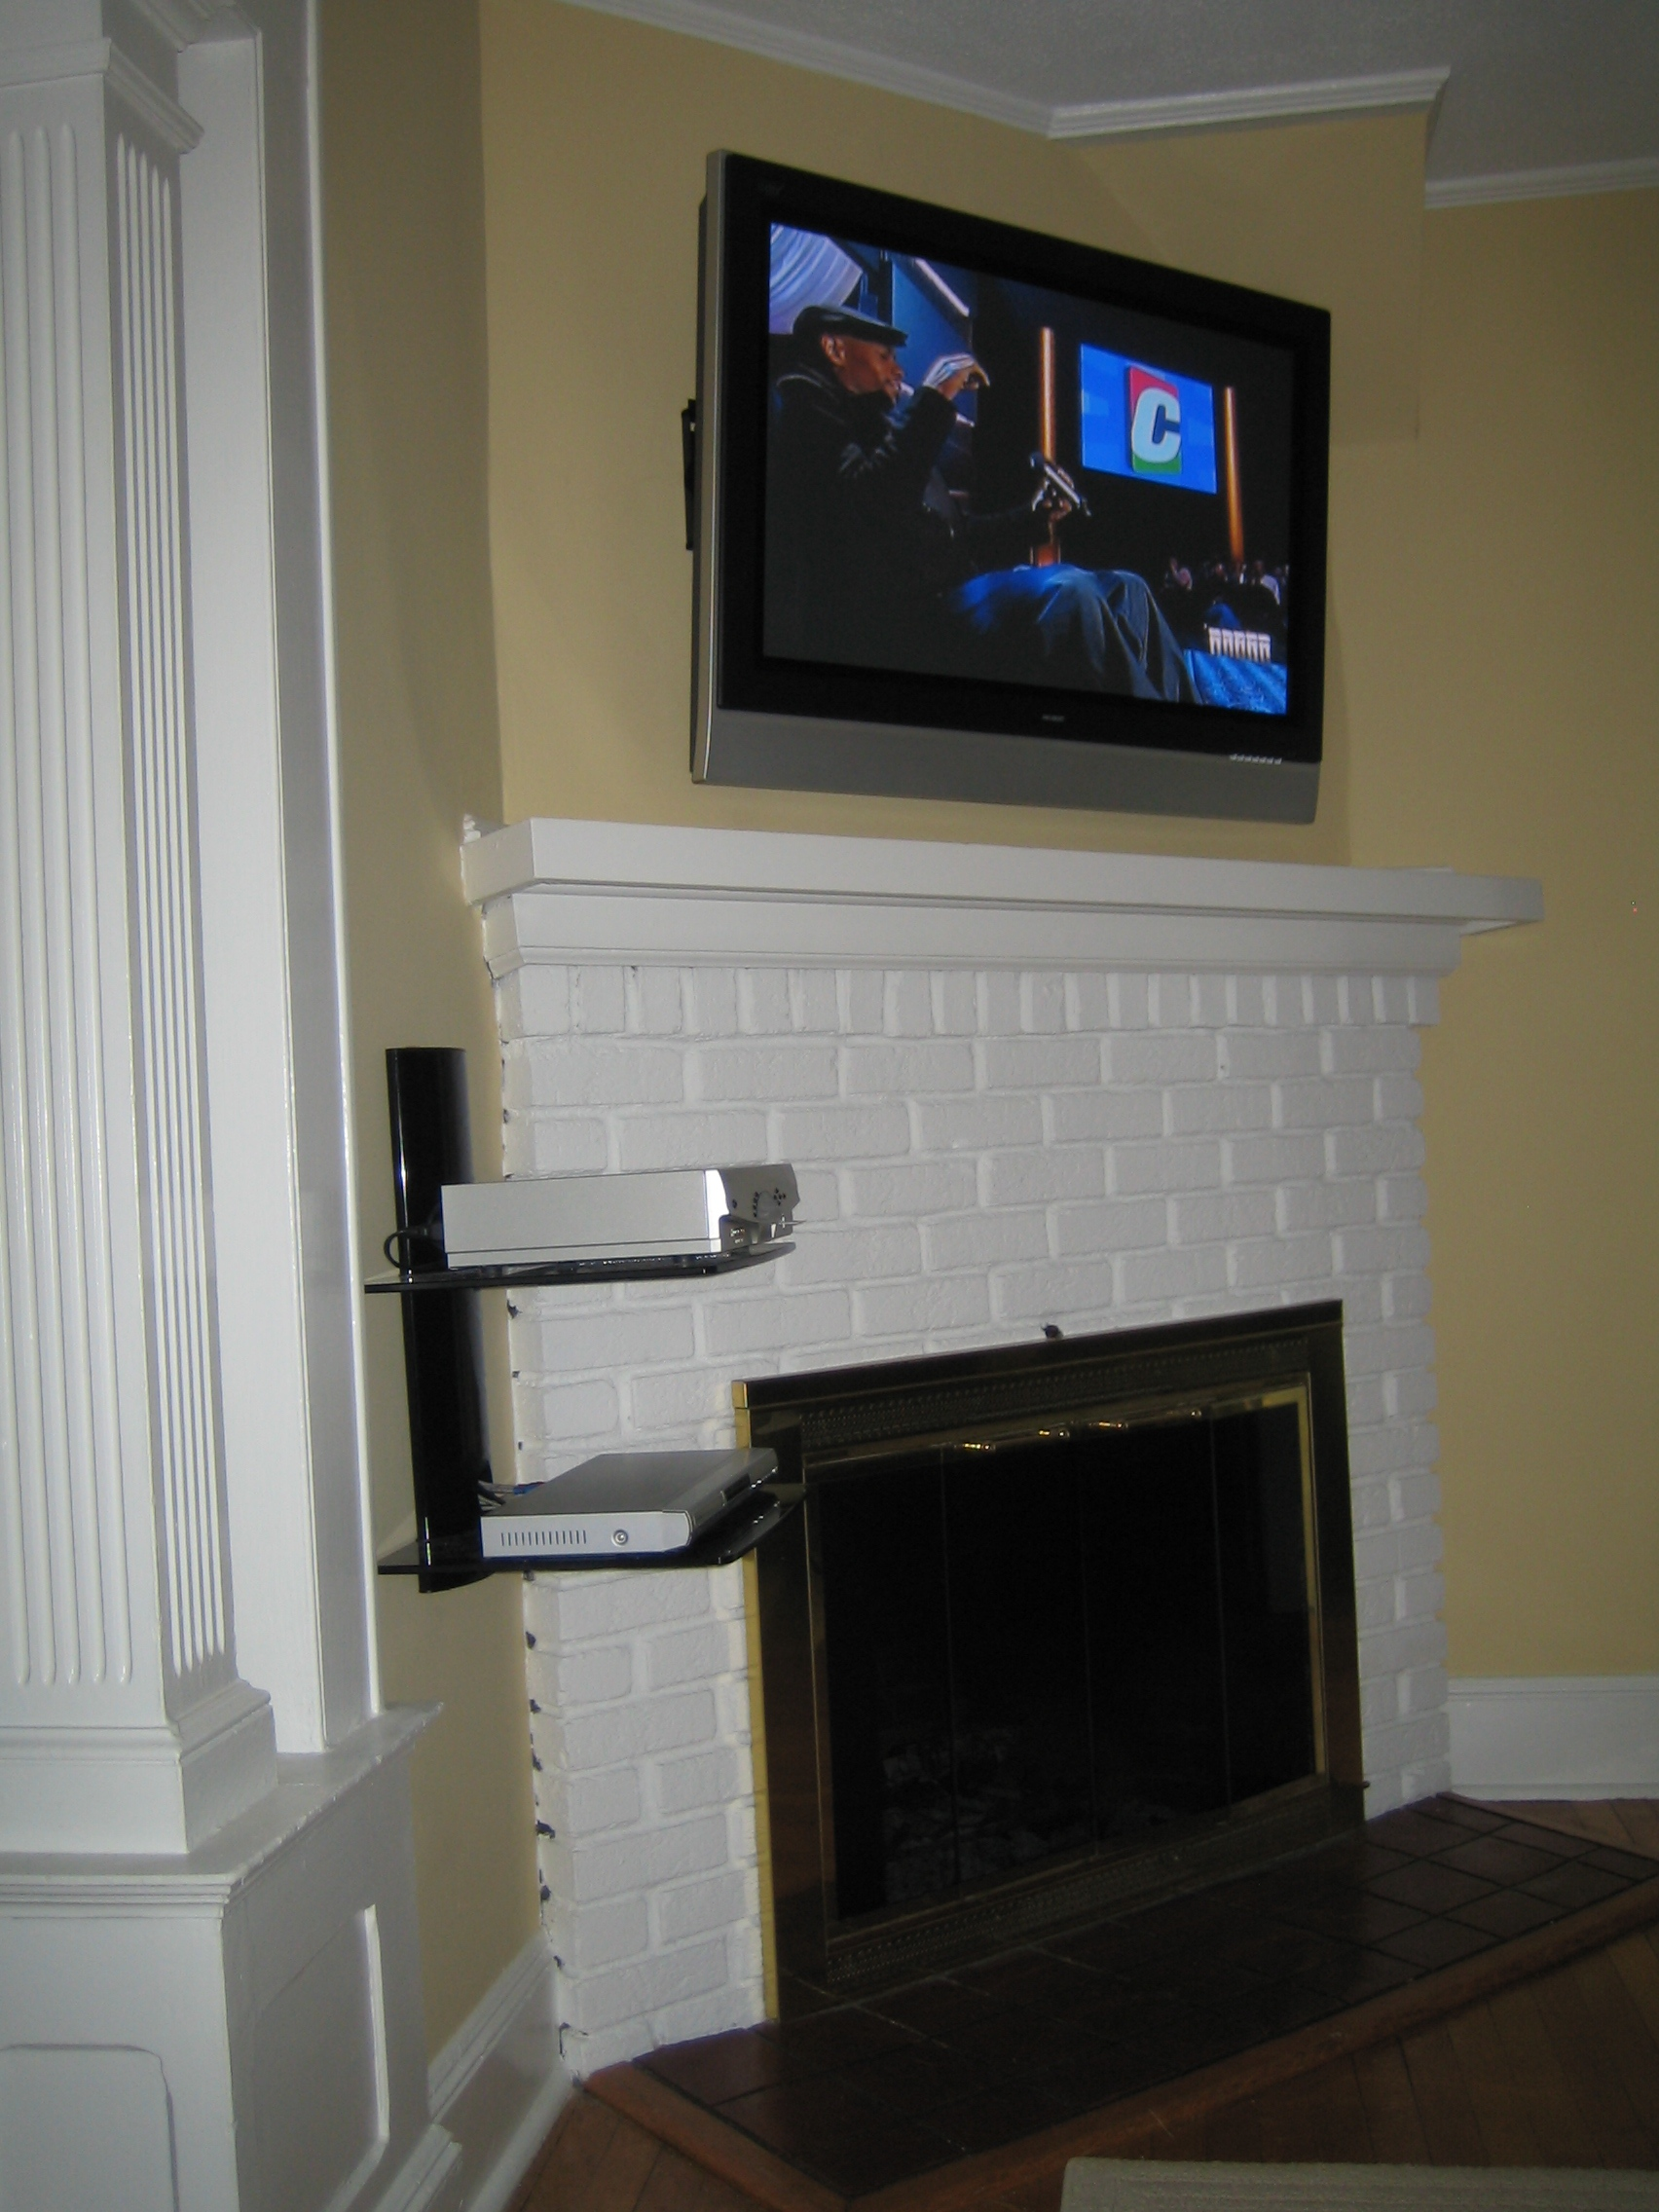 coventry ct u2013 tv instlal over fireplace with all wires concealed